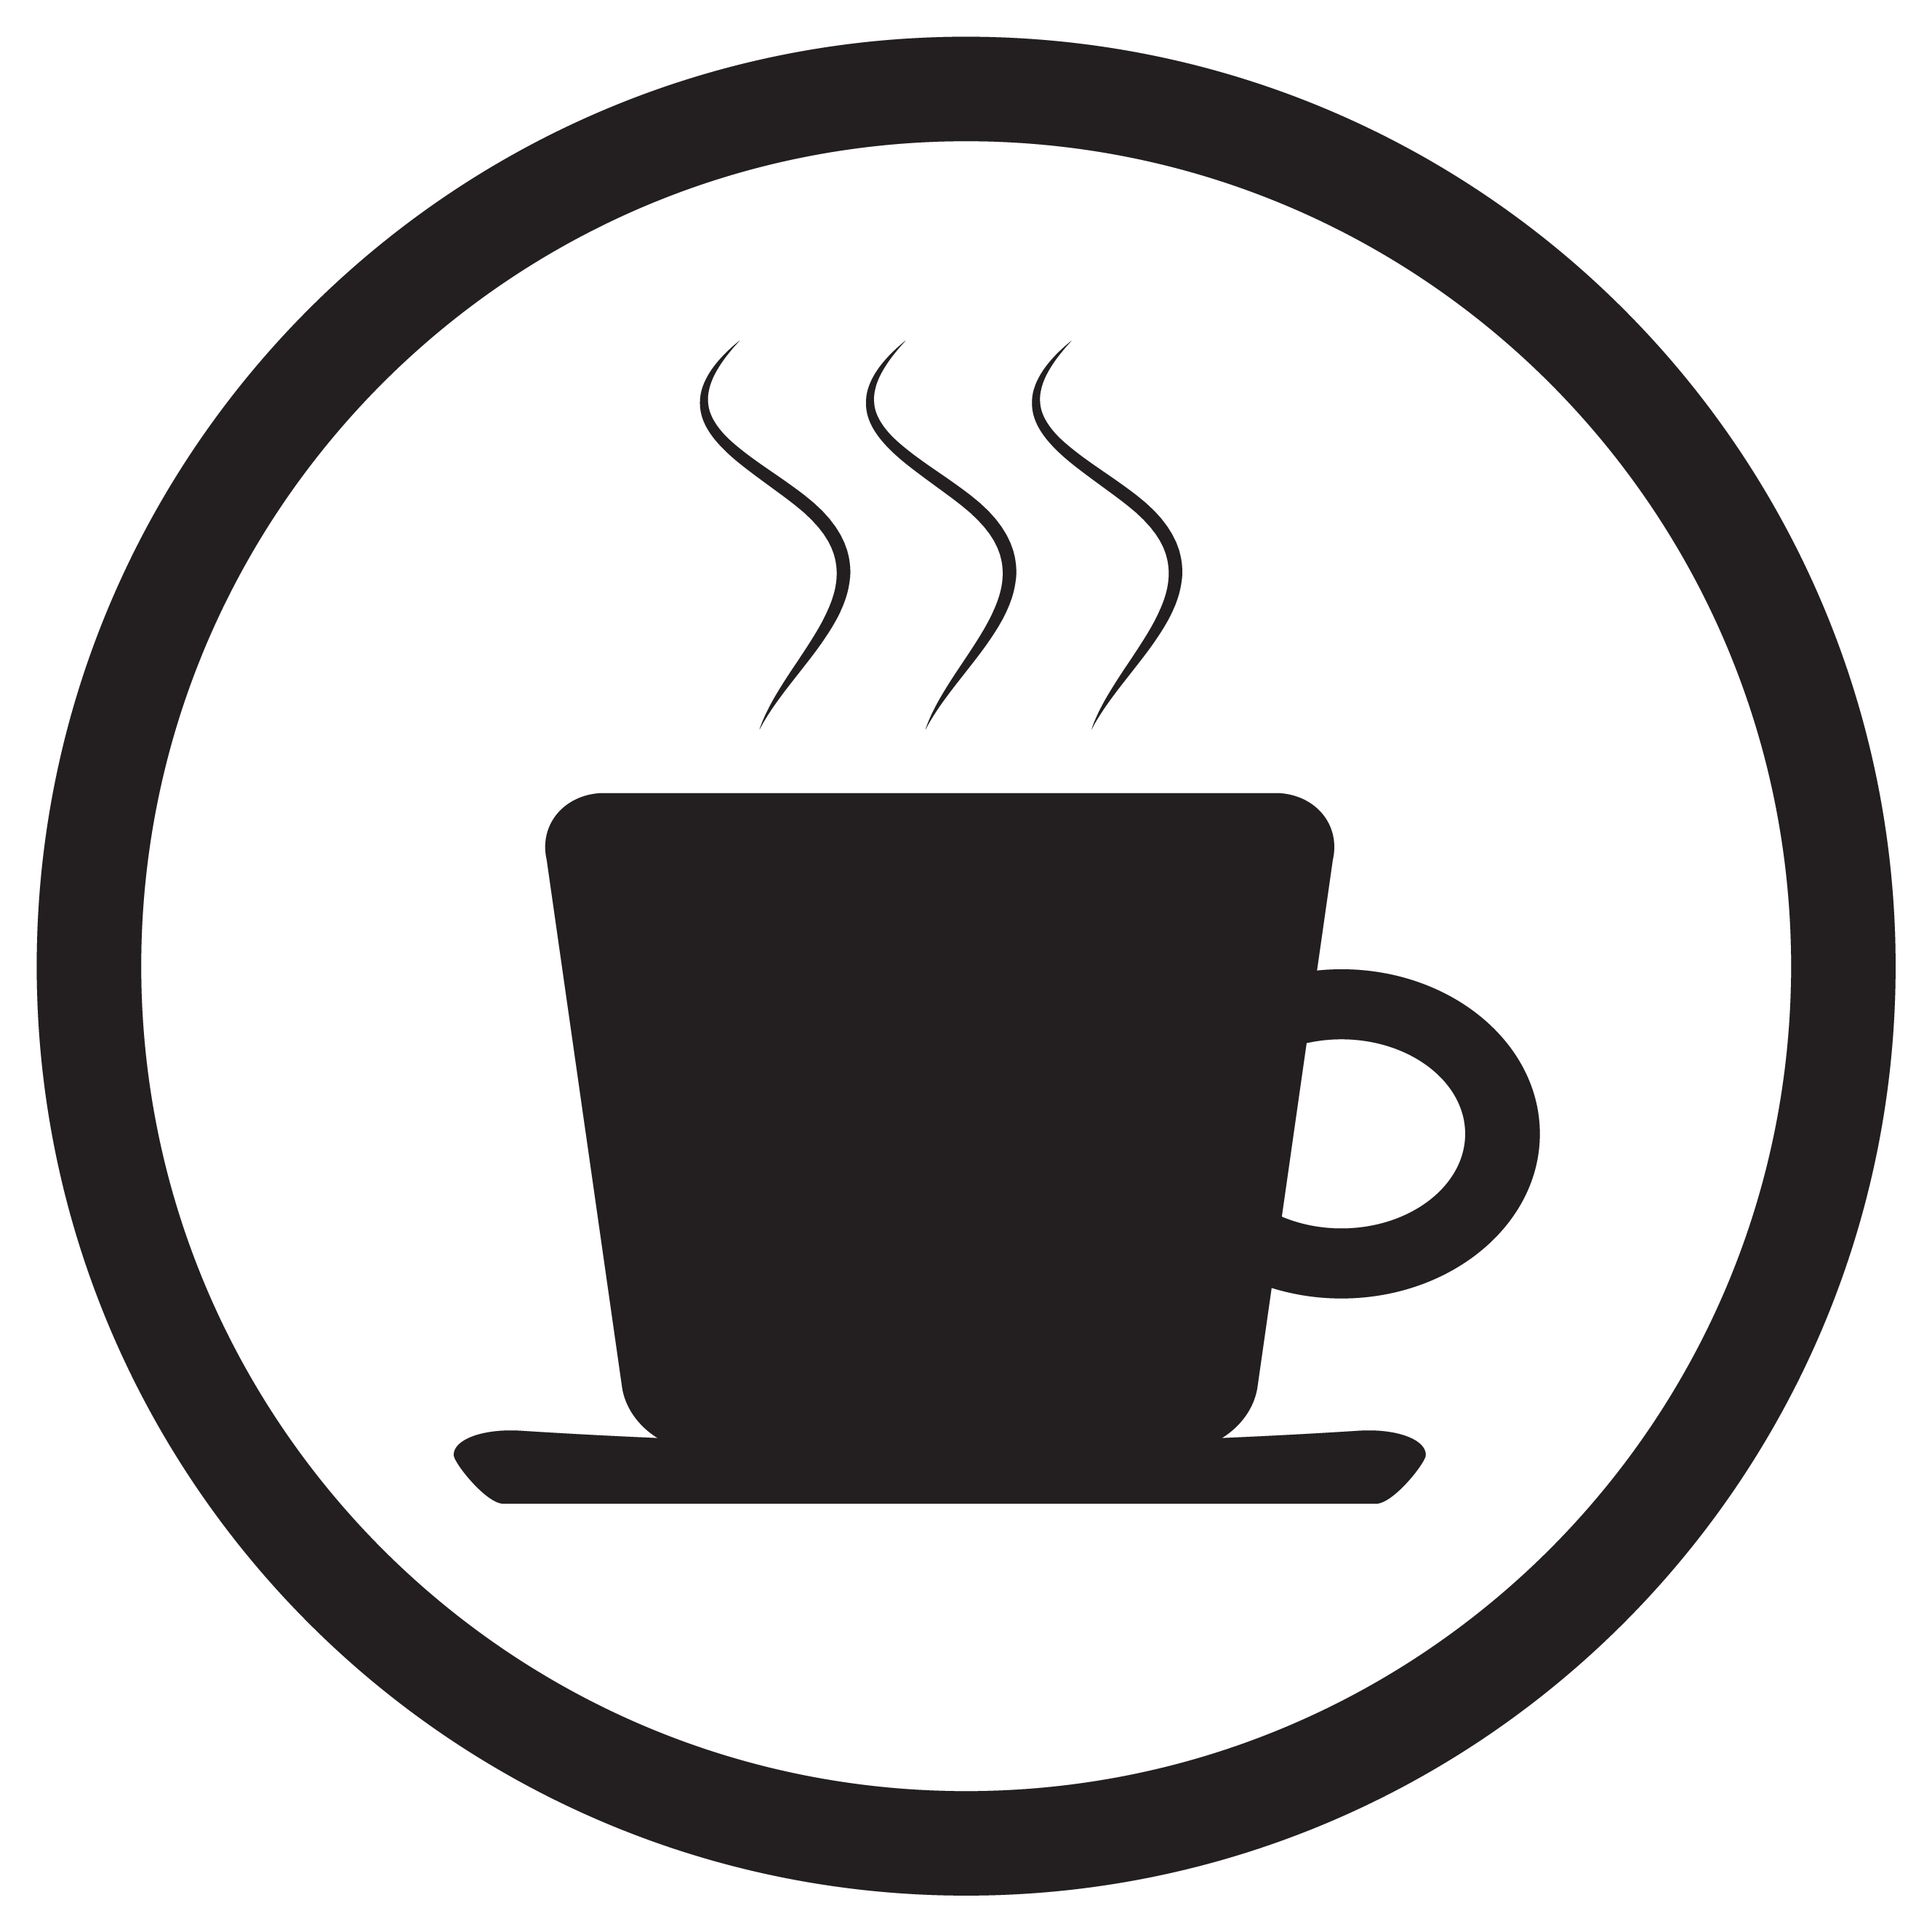 Tea And Coffee Cup Icon Black White By 09910190 Thehungryjpeg Com